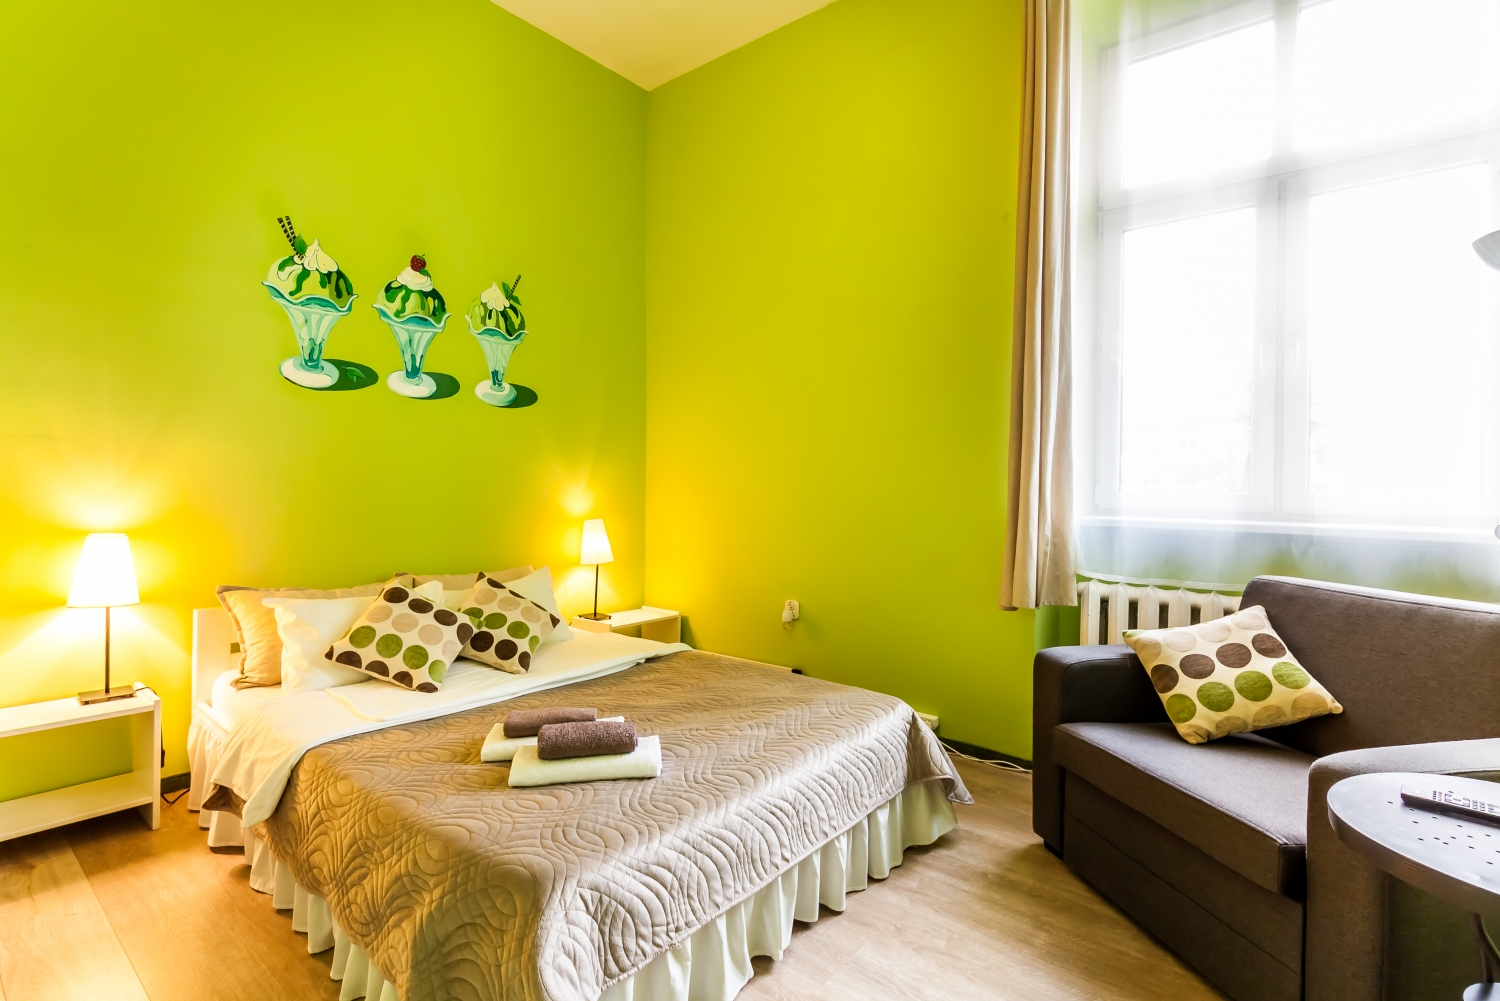 Fine How To Decorate Hostel Room Walls Mold - Art & Wall Decor ...